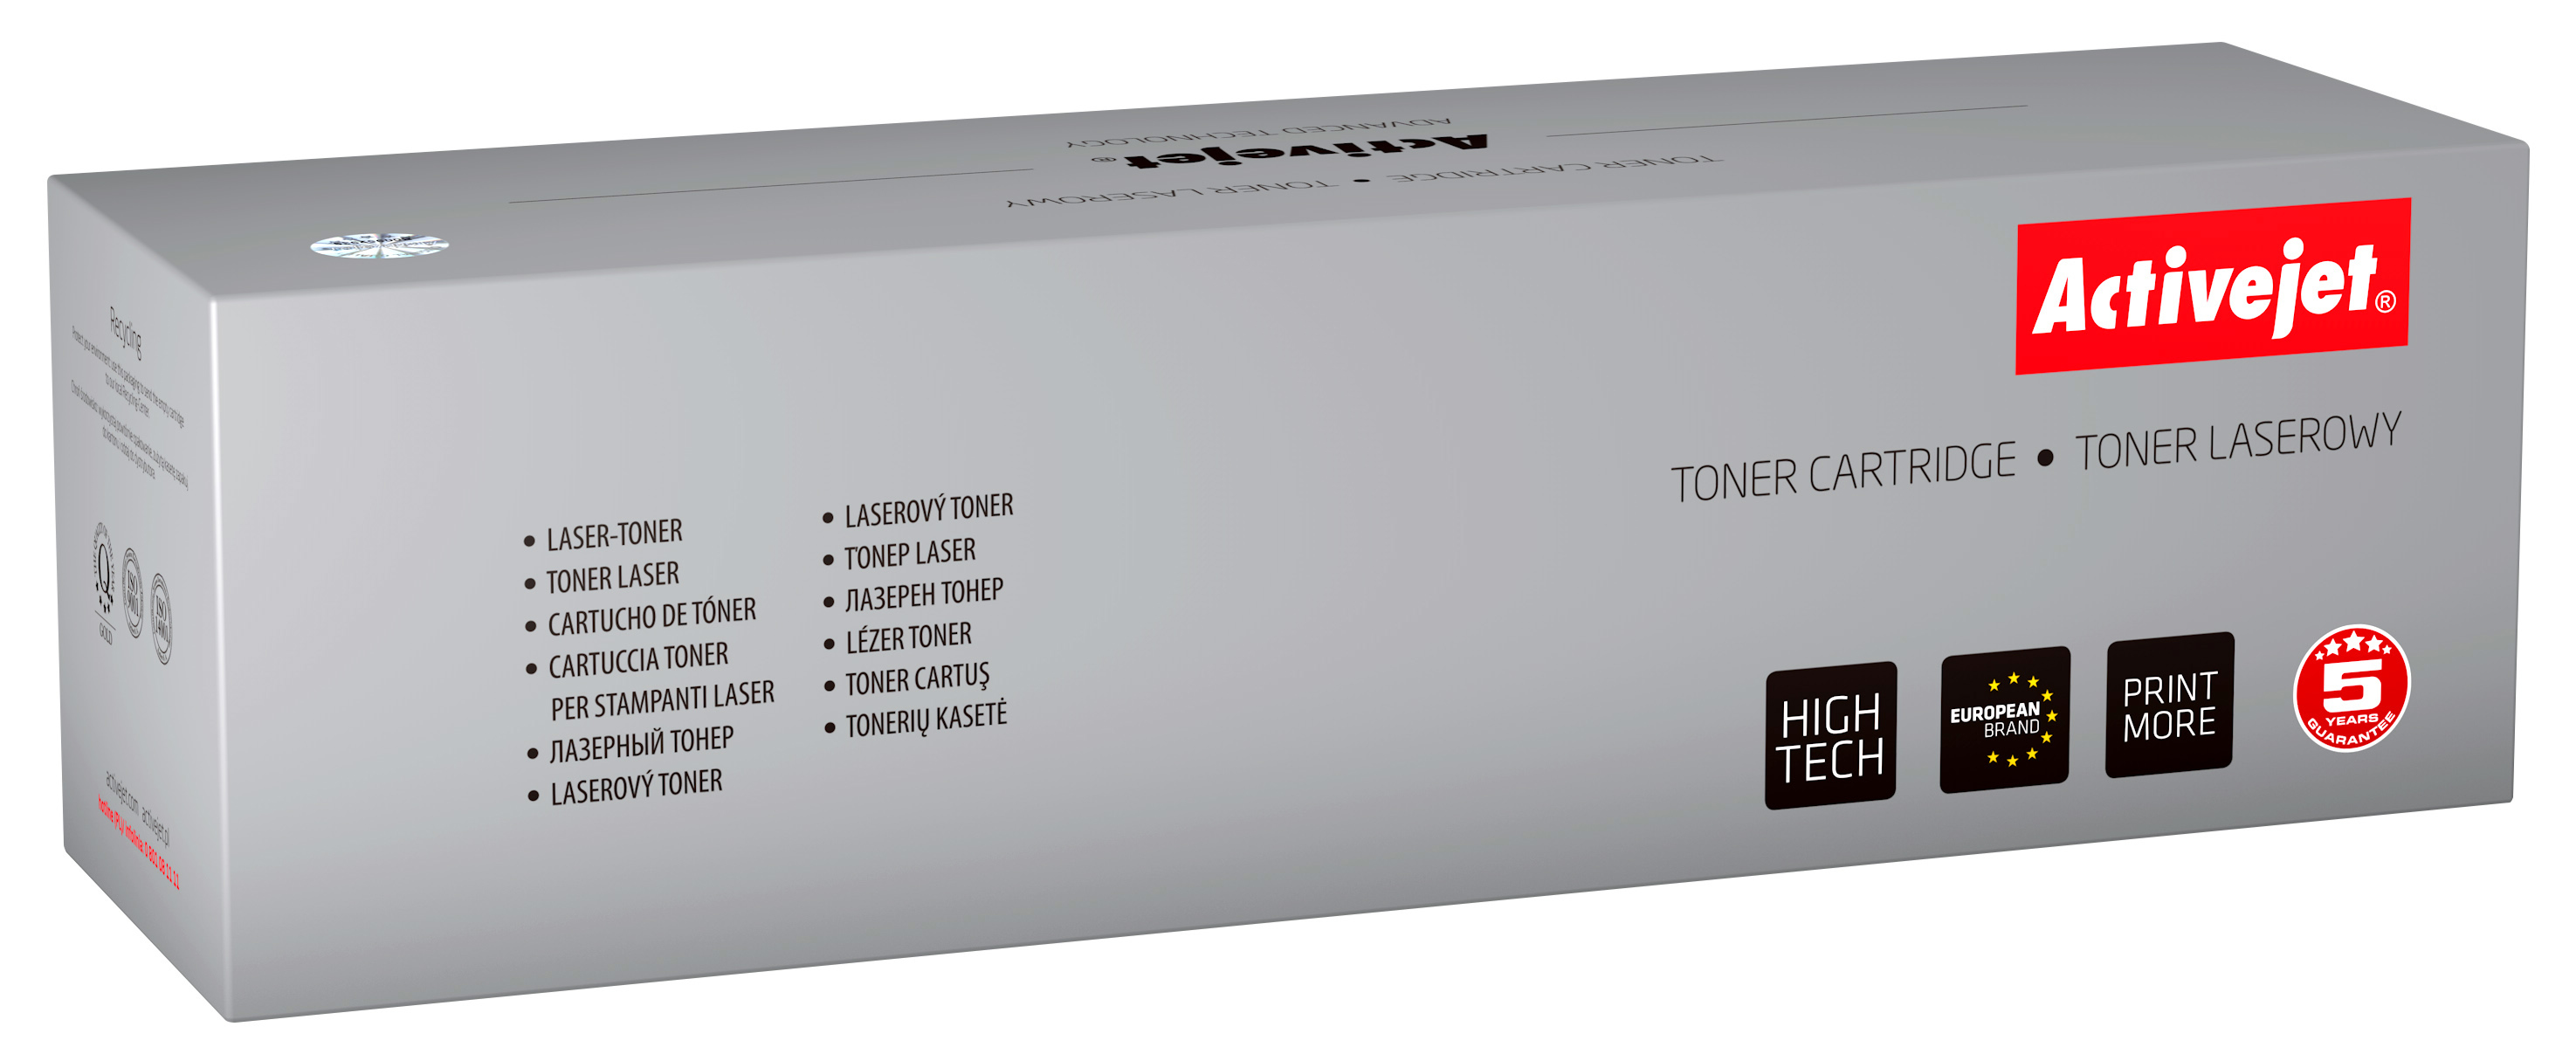 Activejet toner do Minolta TN512M new ATM-512MN